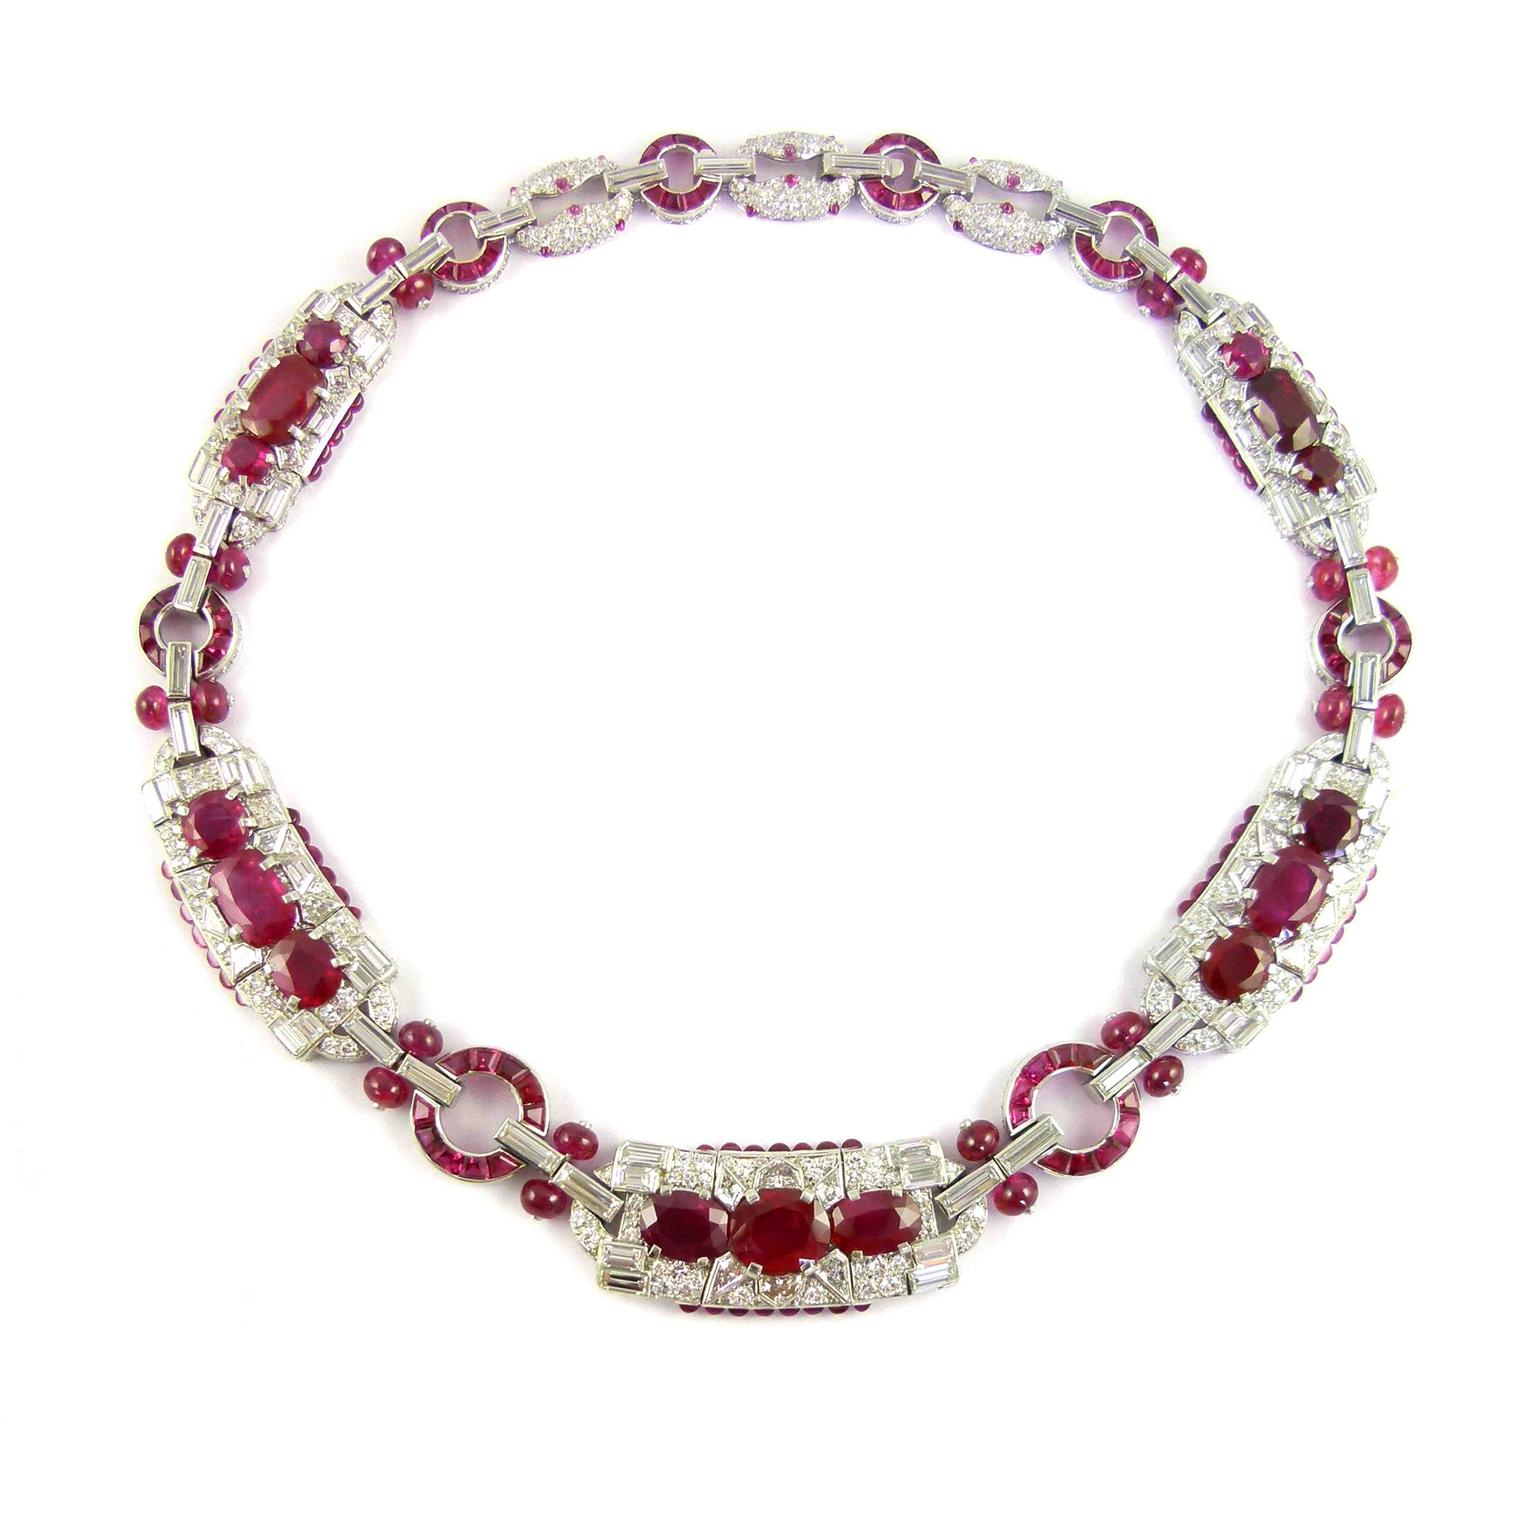 1930S Burmese Ruby Necklace Pertaining To Current Ruby And Diamond Cluster Necklaces (View 9 of 25)